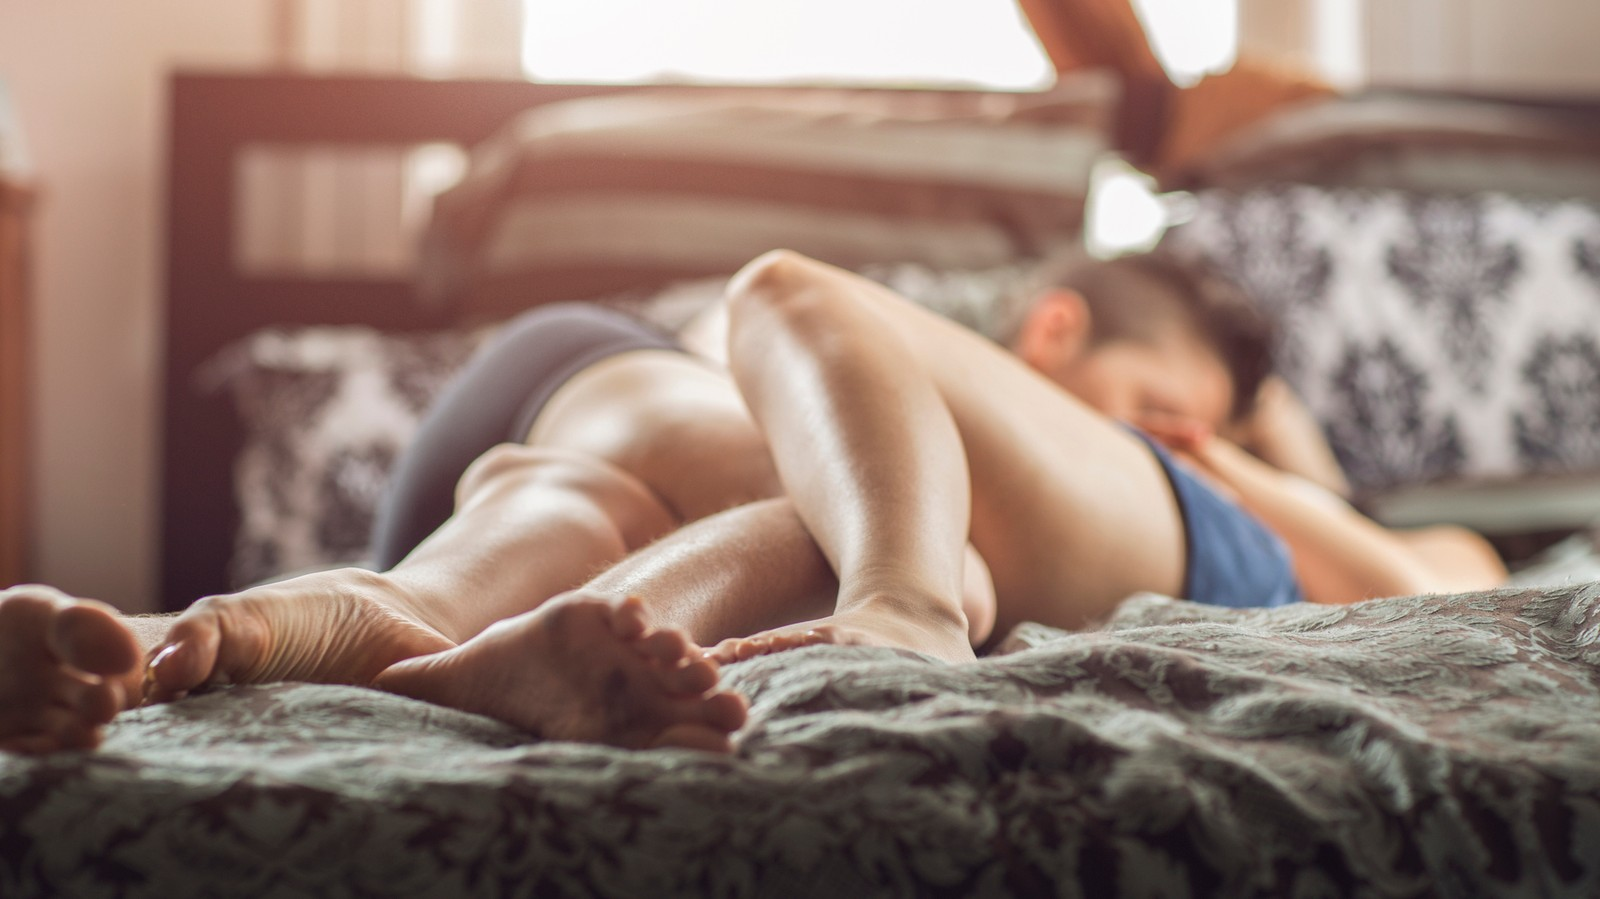 Learning to Have Sober Sex Was More Complicated Than Just 'Being Present'